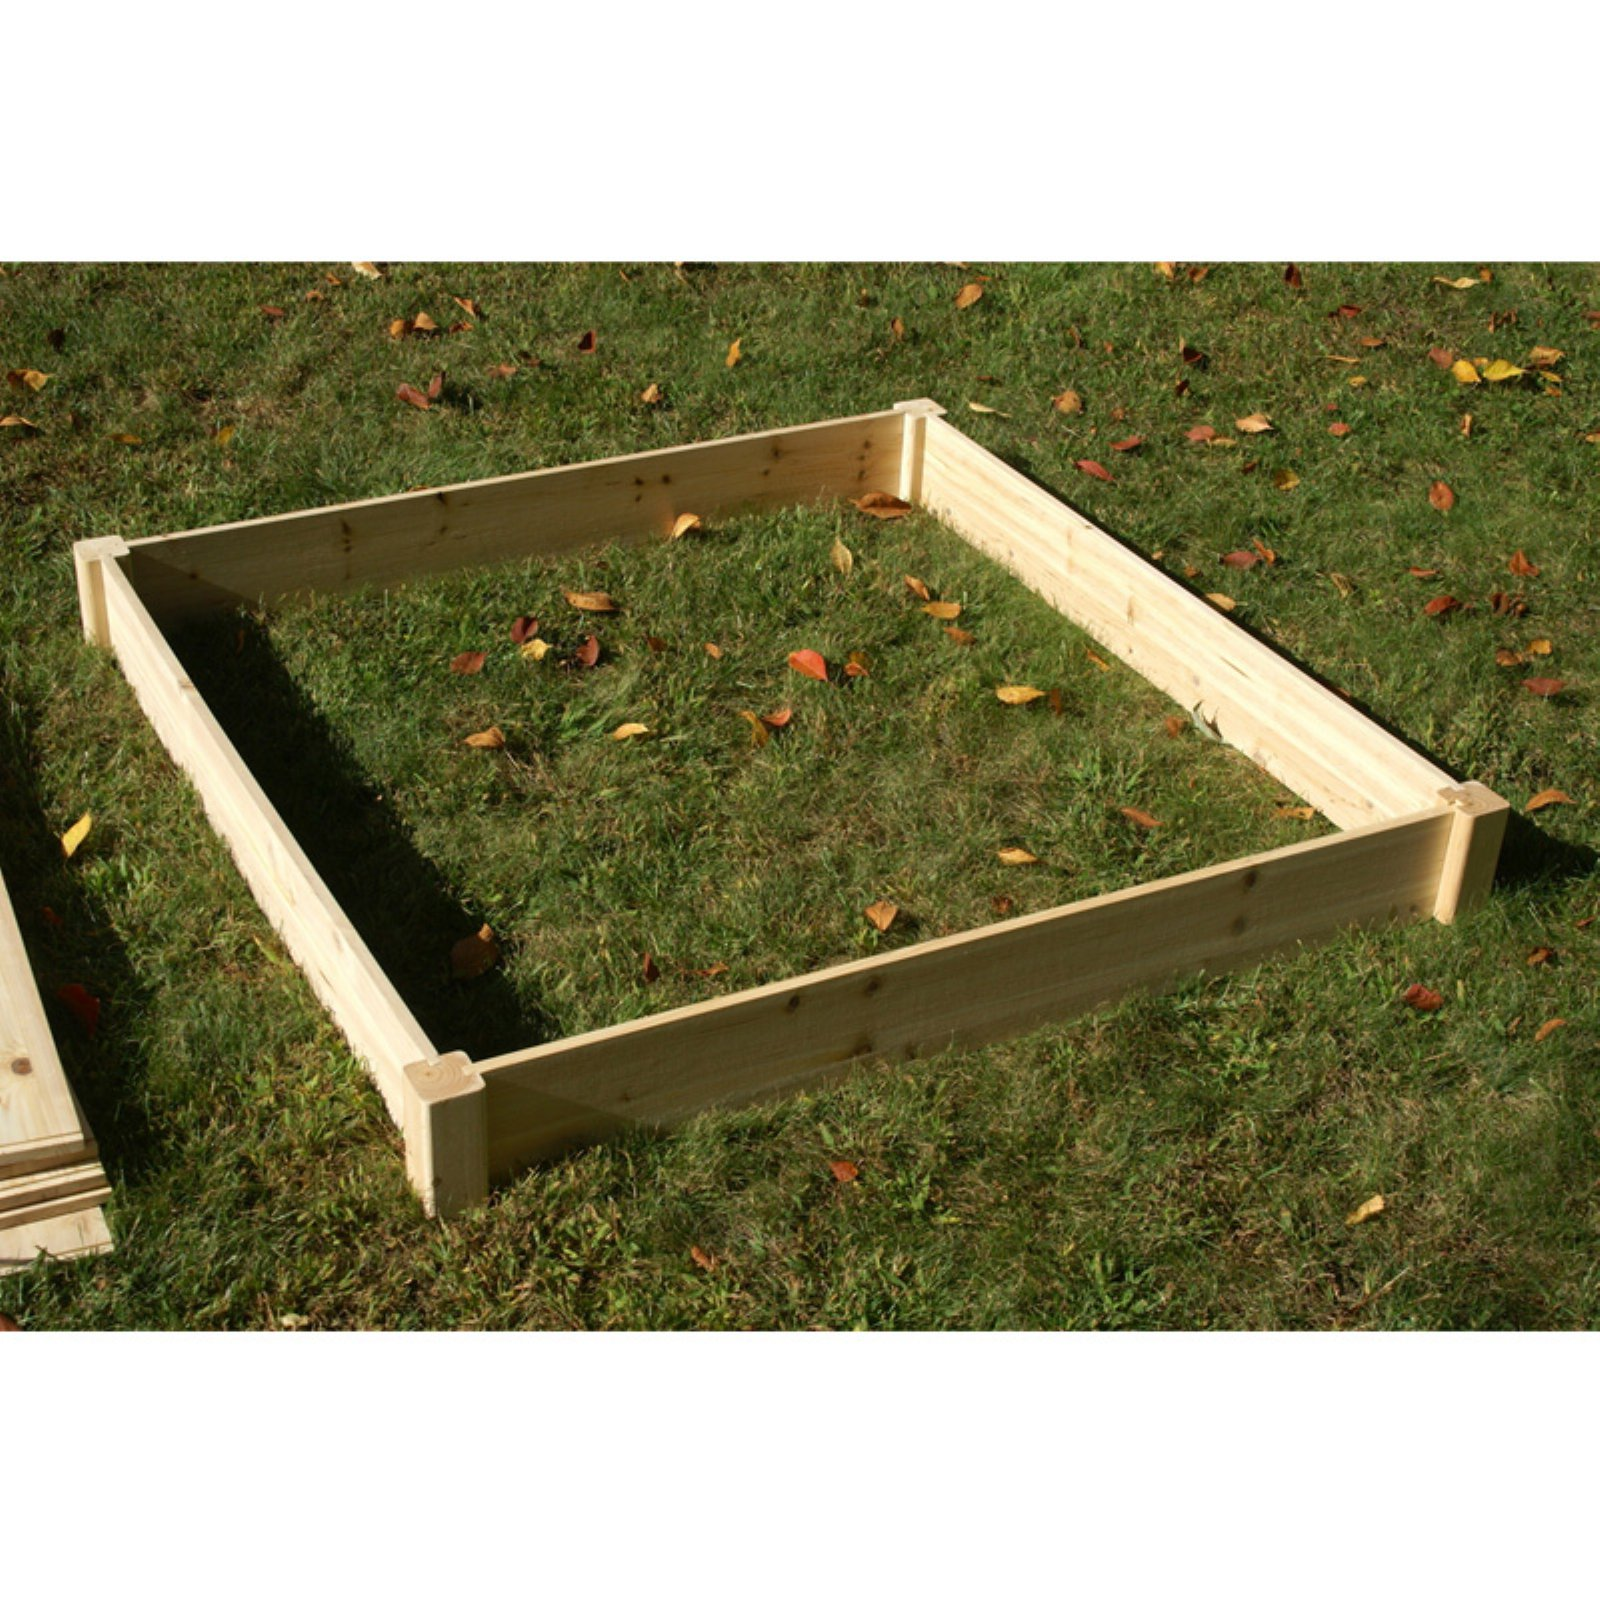 Eden Raised Square Garden Bed - 4 x 4 ft.